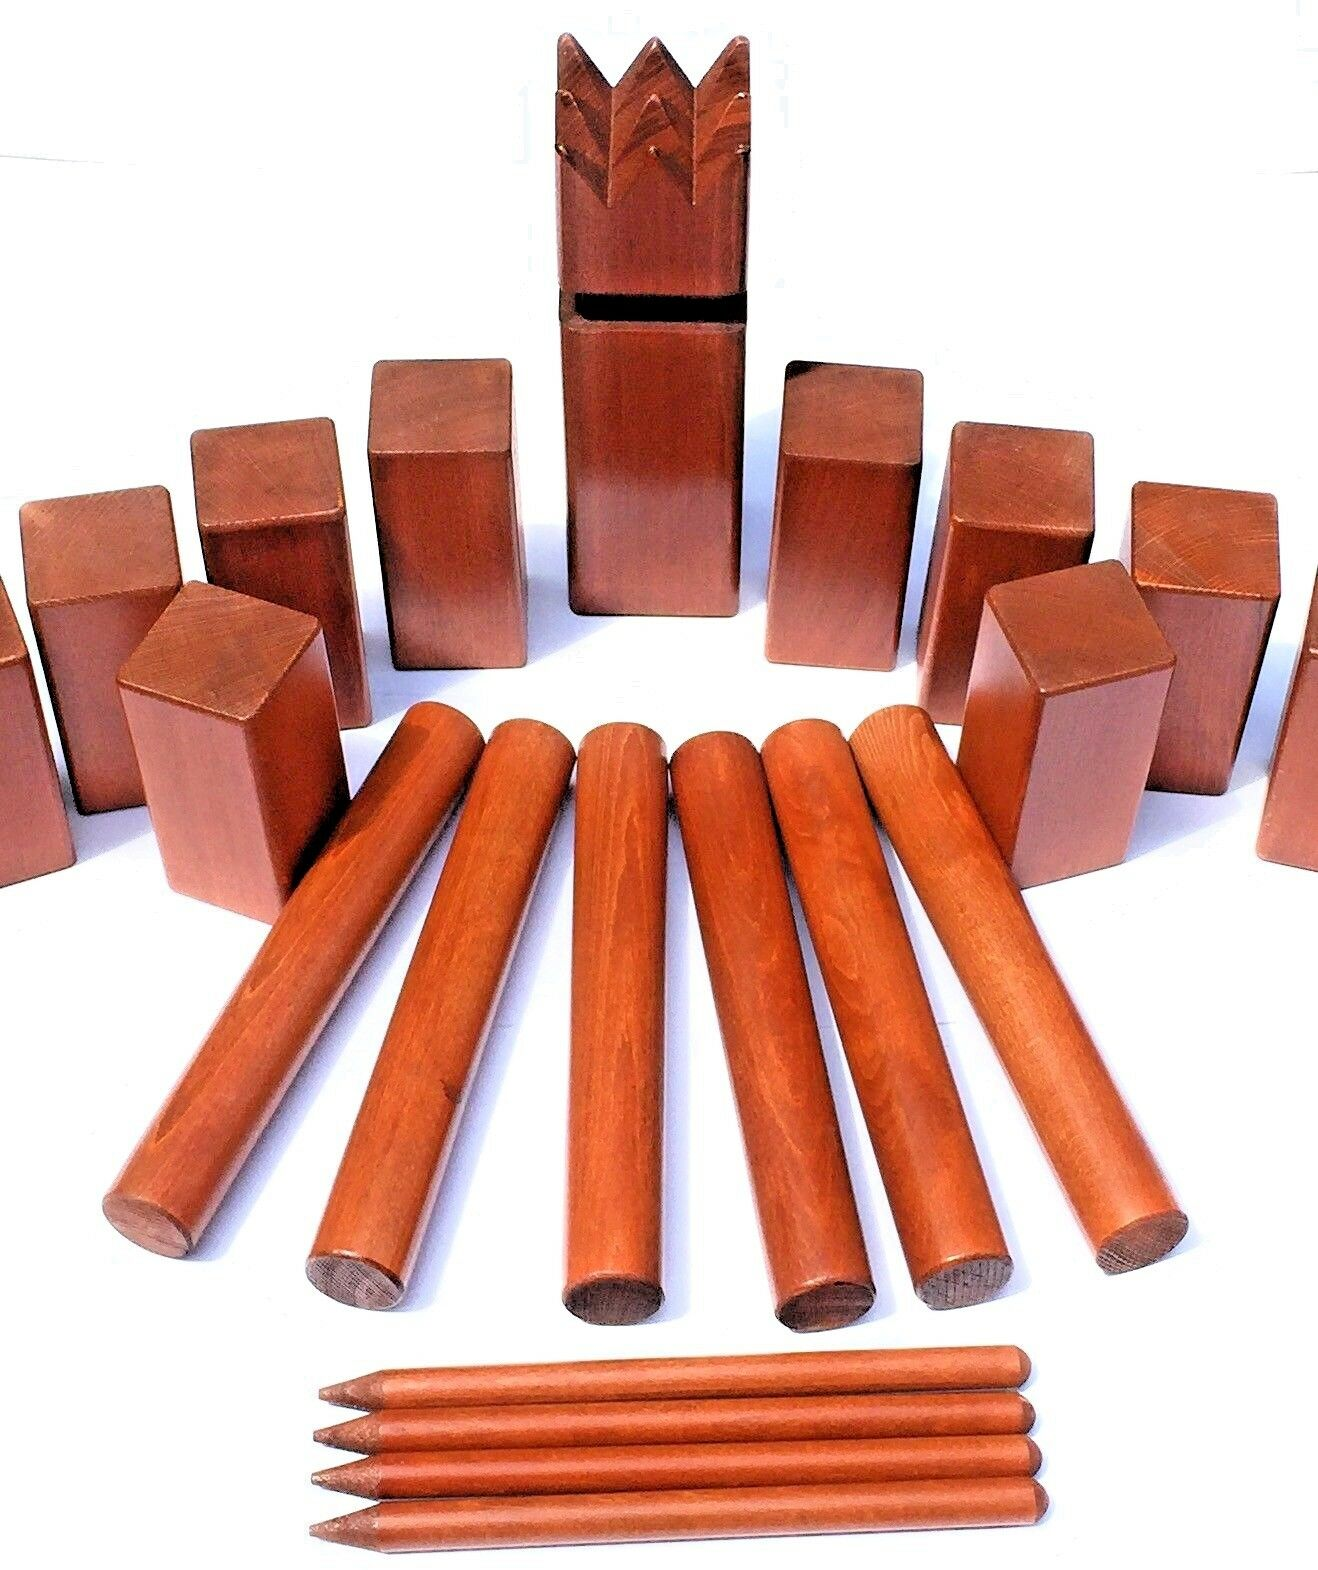 Tournament  Kubb Yard Game Set Mahogany Finish 19.8 LBS. Solid Hardwood Kubbspel  for your style of play at the cheapest prices